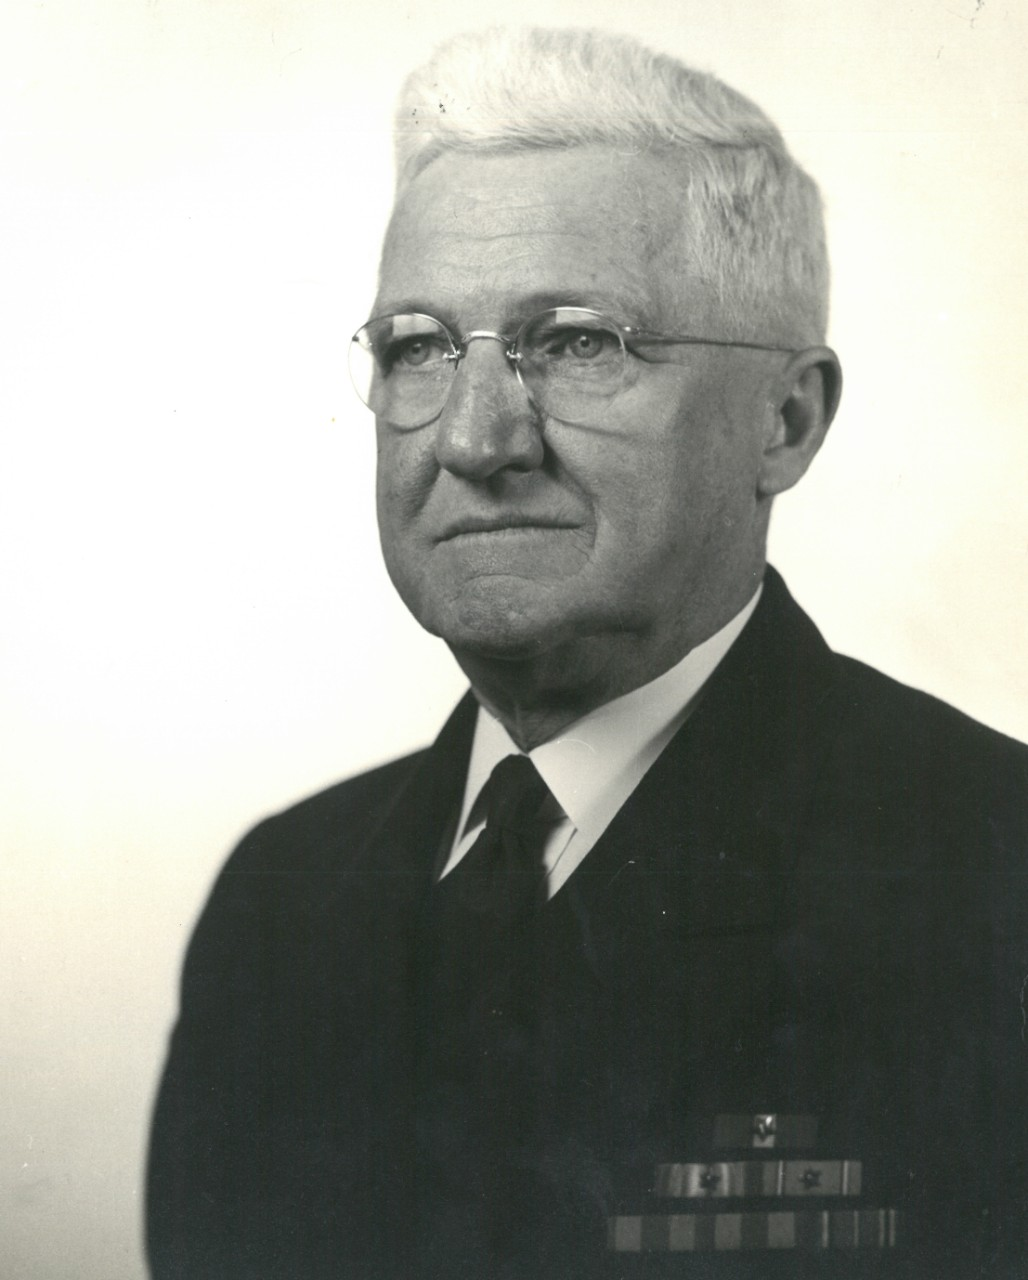 This portrait of Stark later in life keenly shows his care worn countenance and reflective gaze, January 1951. (Public Affairs Office, NAS Anacostia, D.C., U.S. Navy Photograph 1-51, Biography Collection, Naval History and Heritage Command)